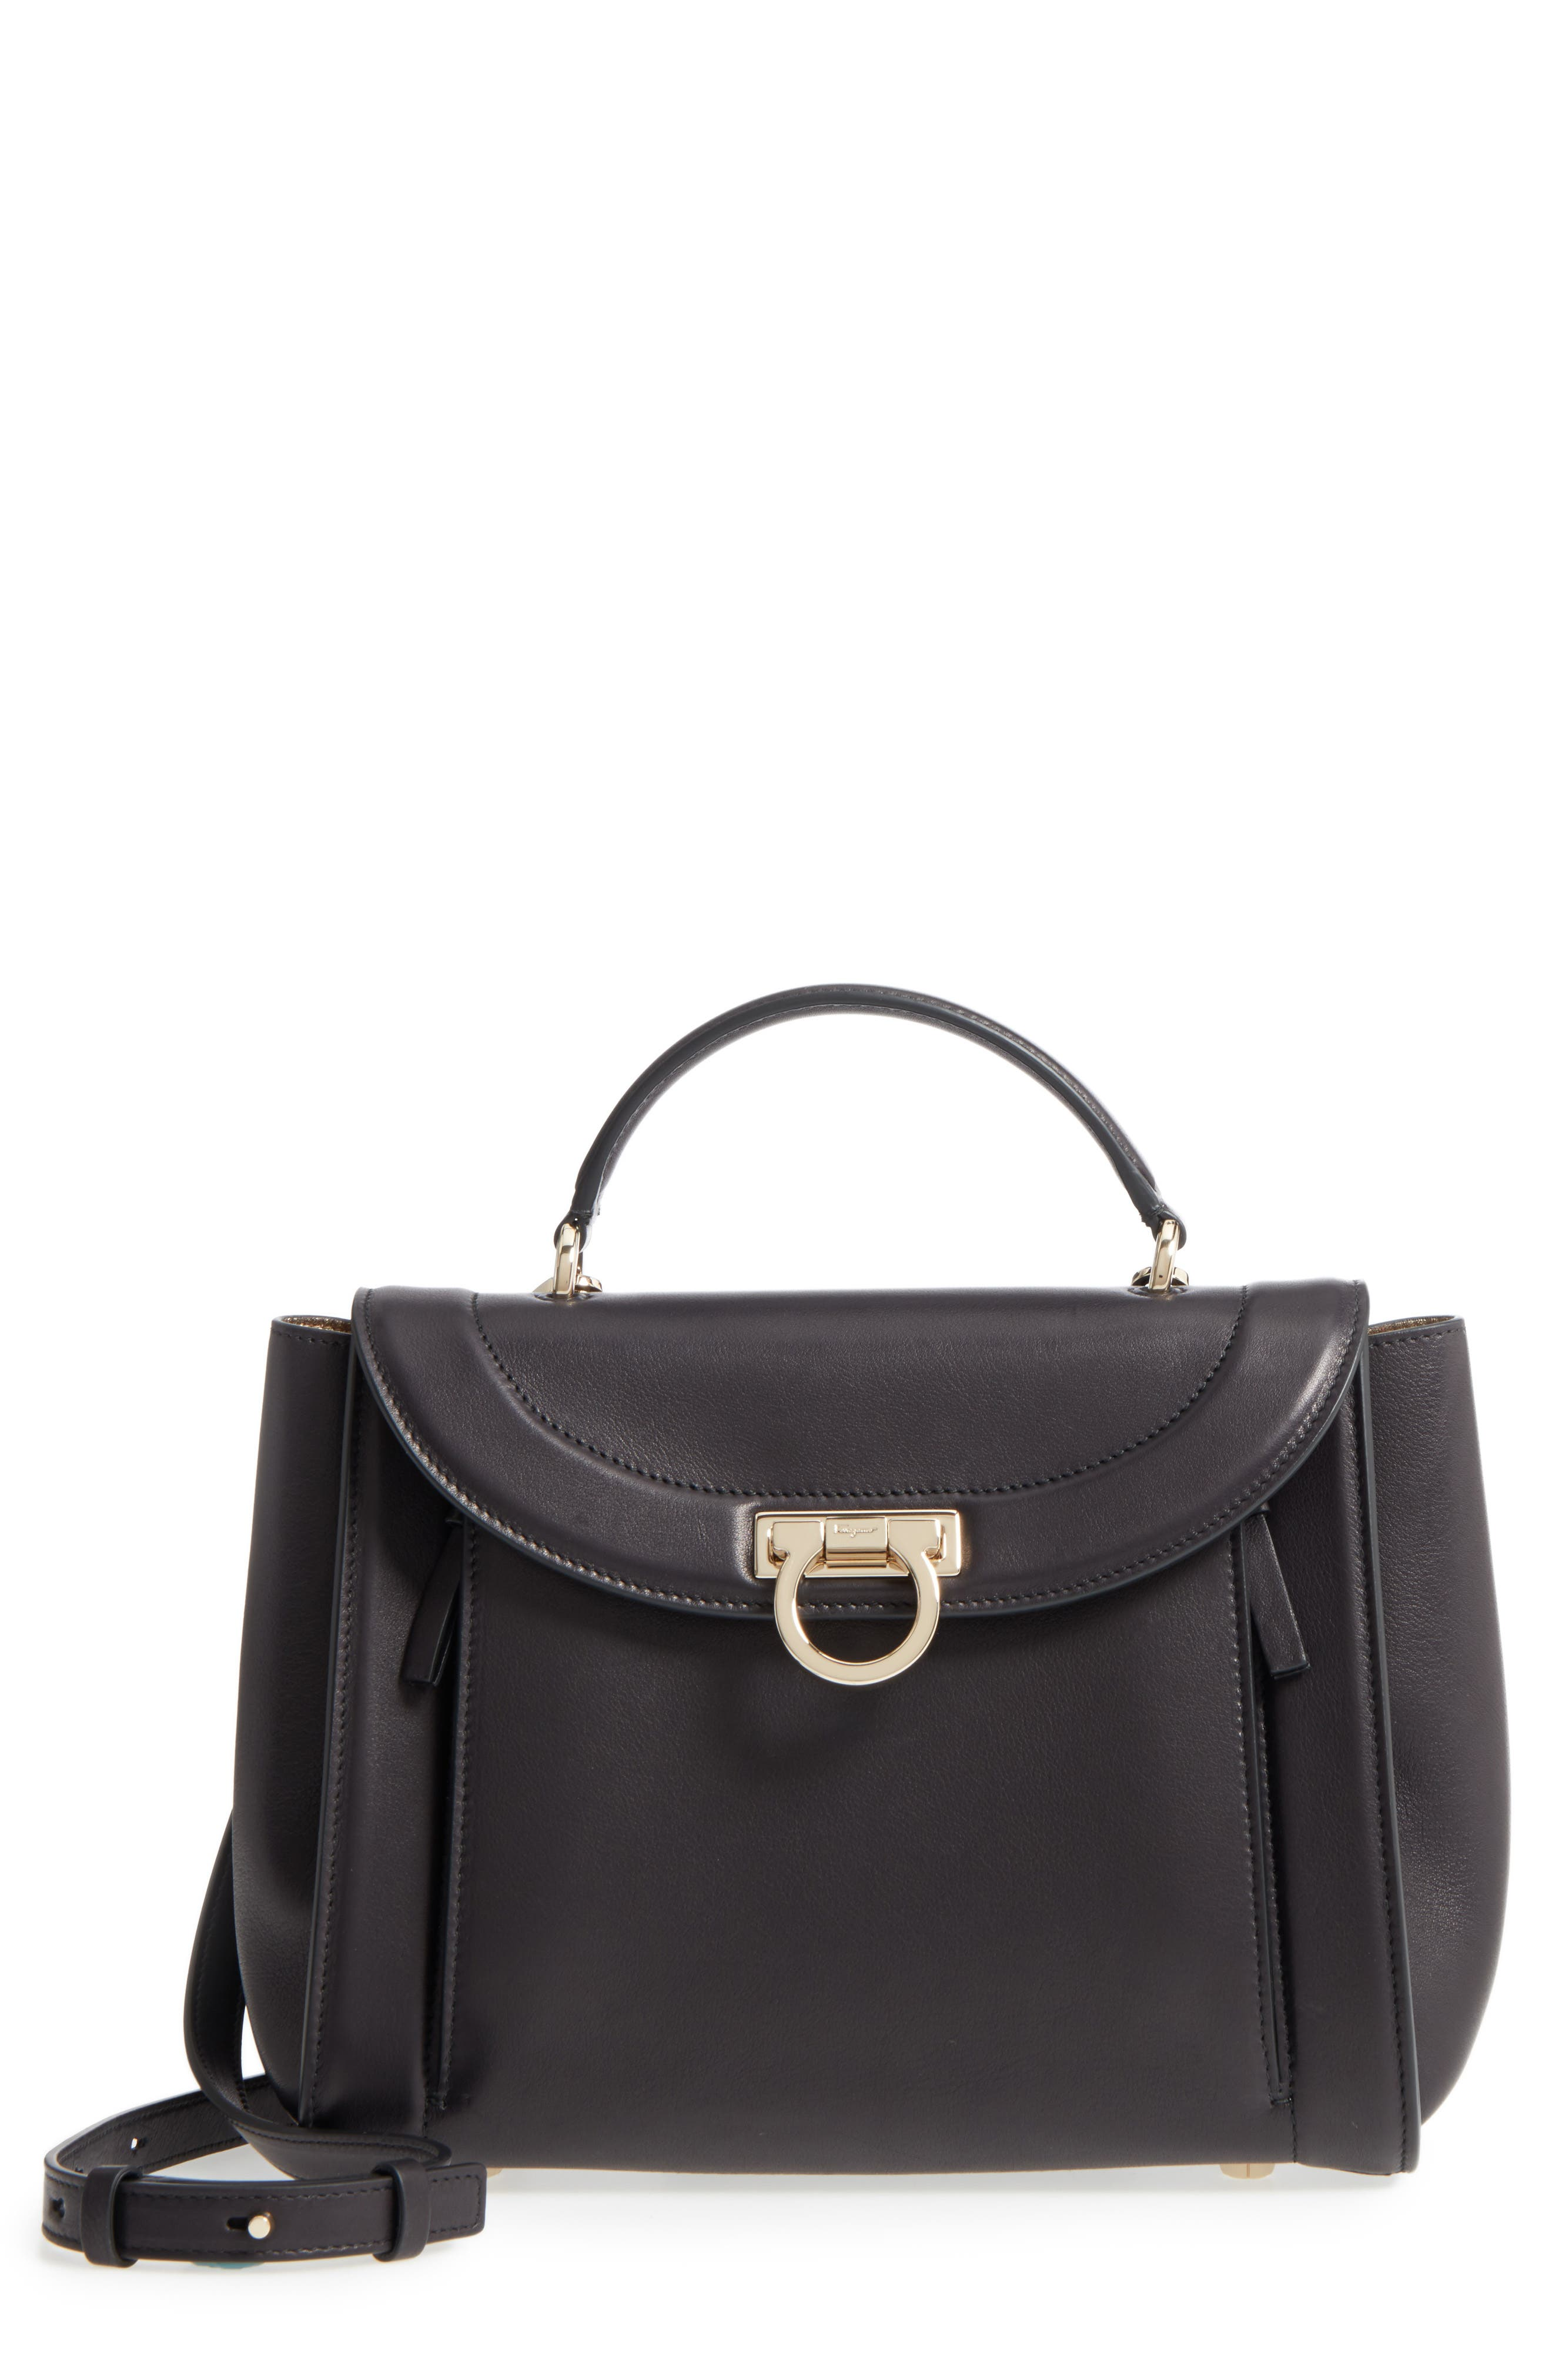 Salvatore Ferragamo Small Leather Satchel